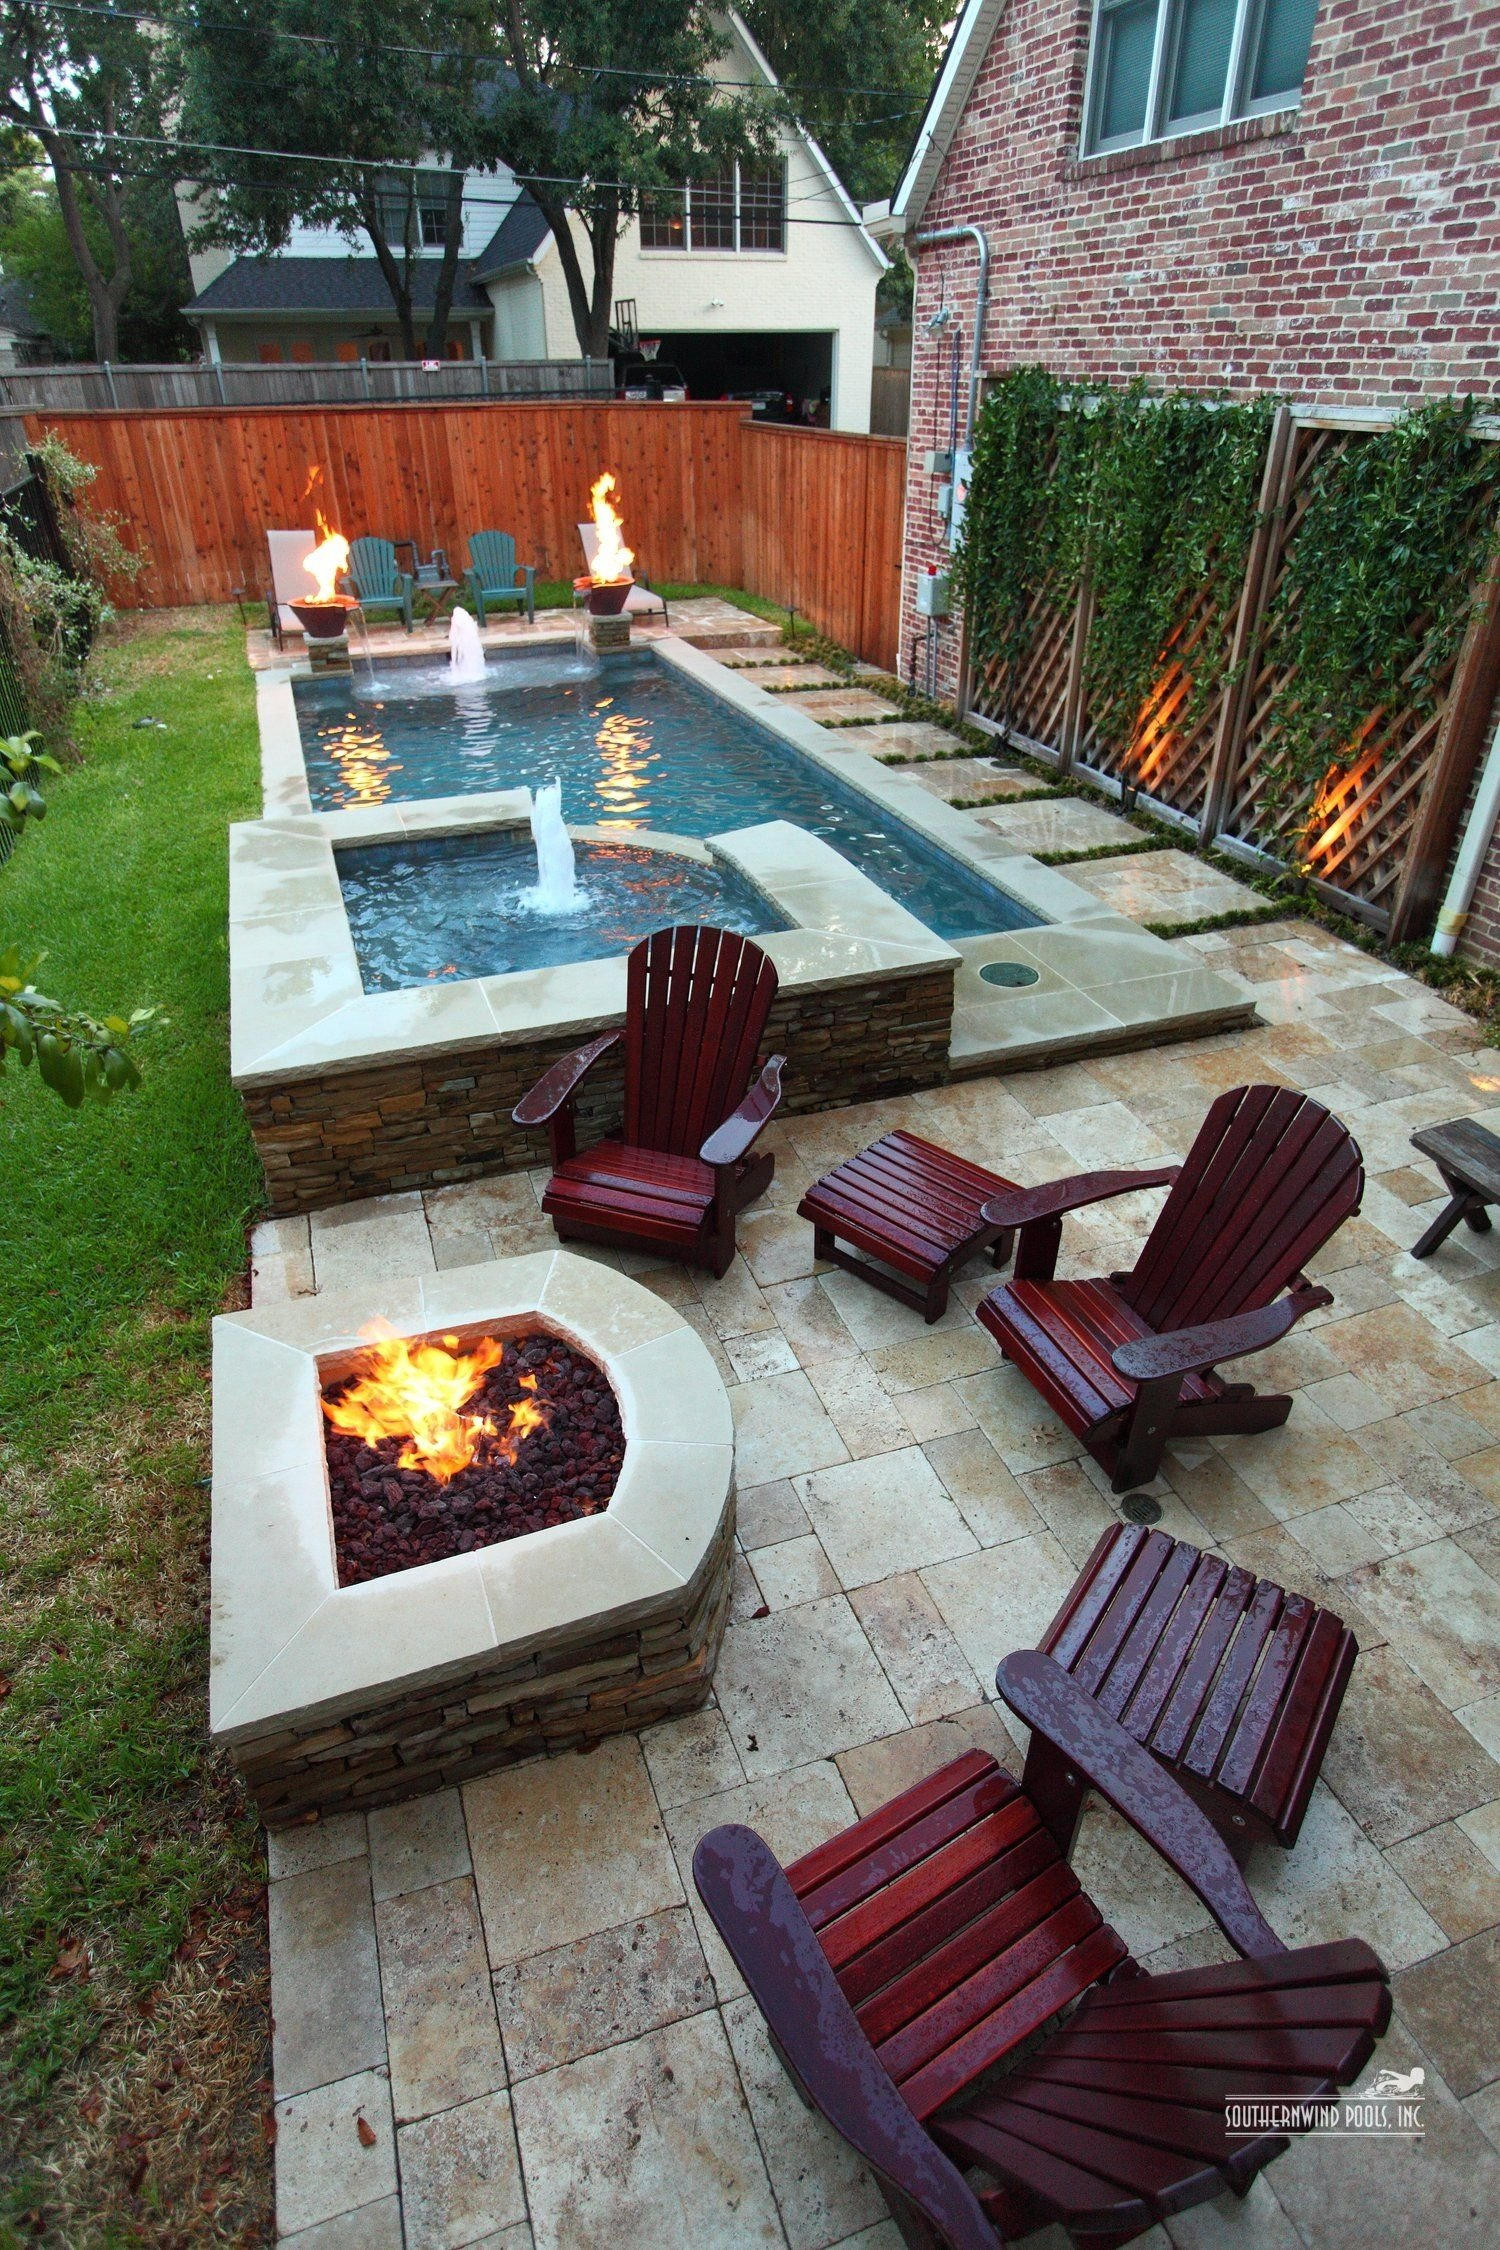 10 Awesome Backyard Ideas For Small Yards narrow pool with hot tub firepit great for small spaces in my 1 2020